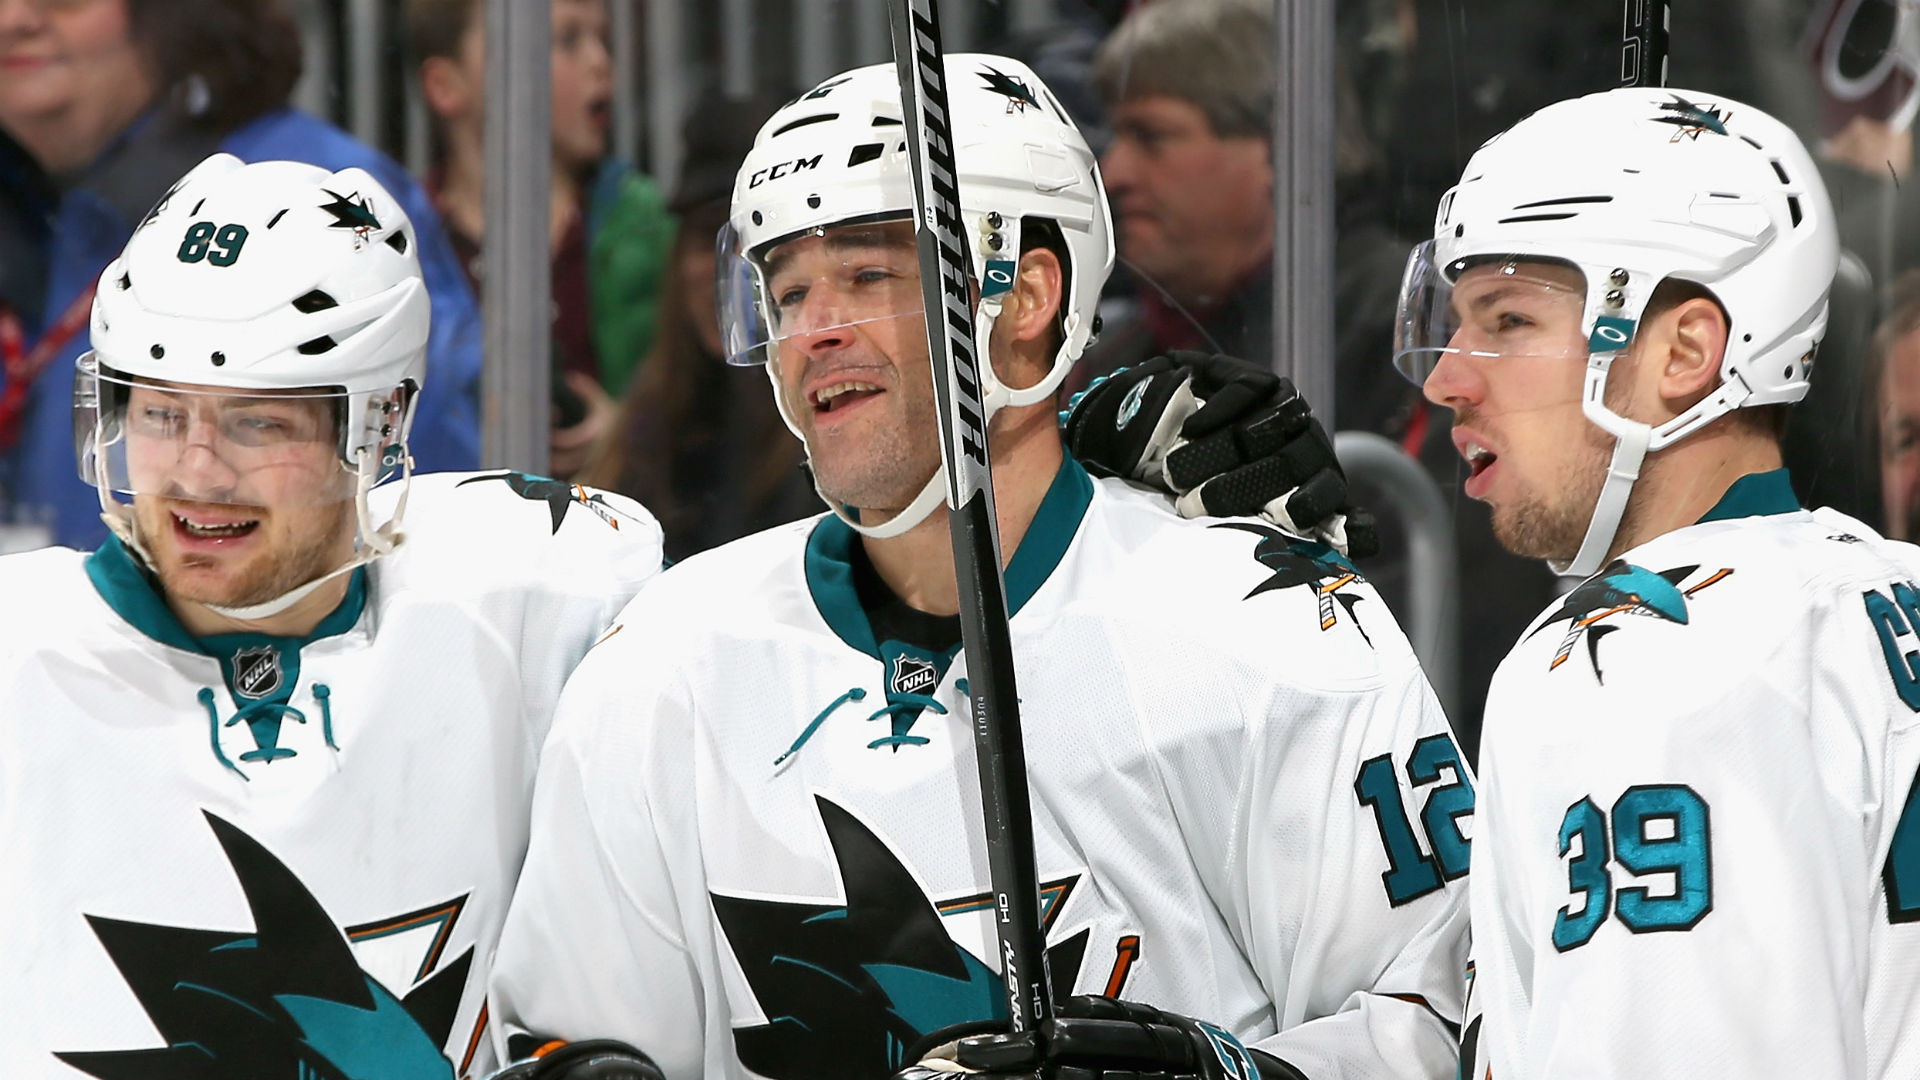 Nhl Free Agency Maple Leafs Patrick Marleau Gamble Clear